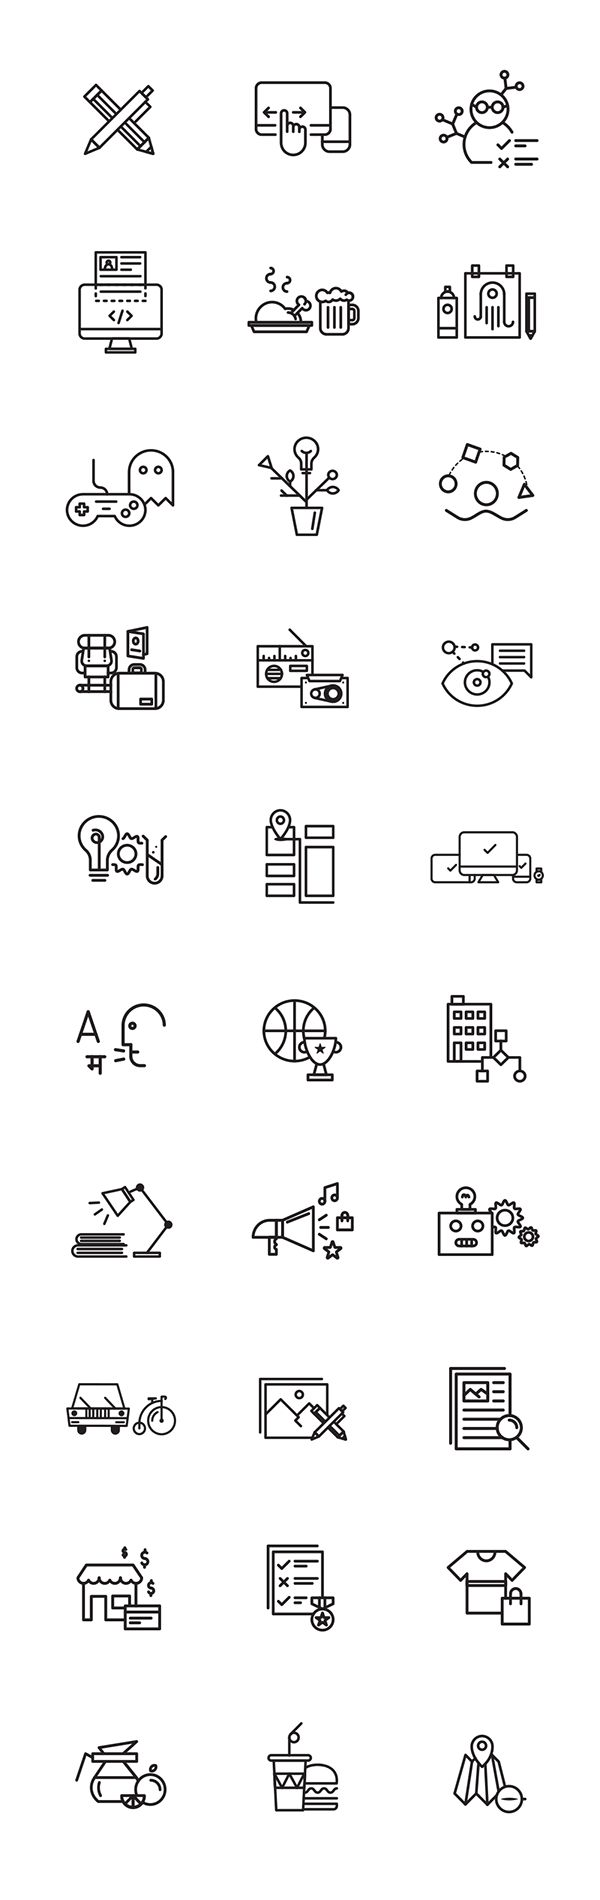 30 Free Icons on Behance